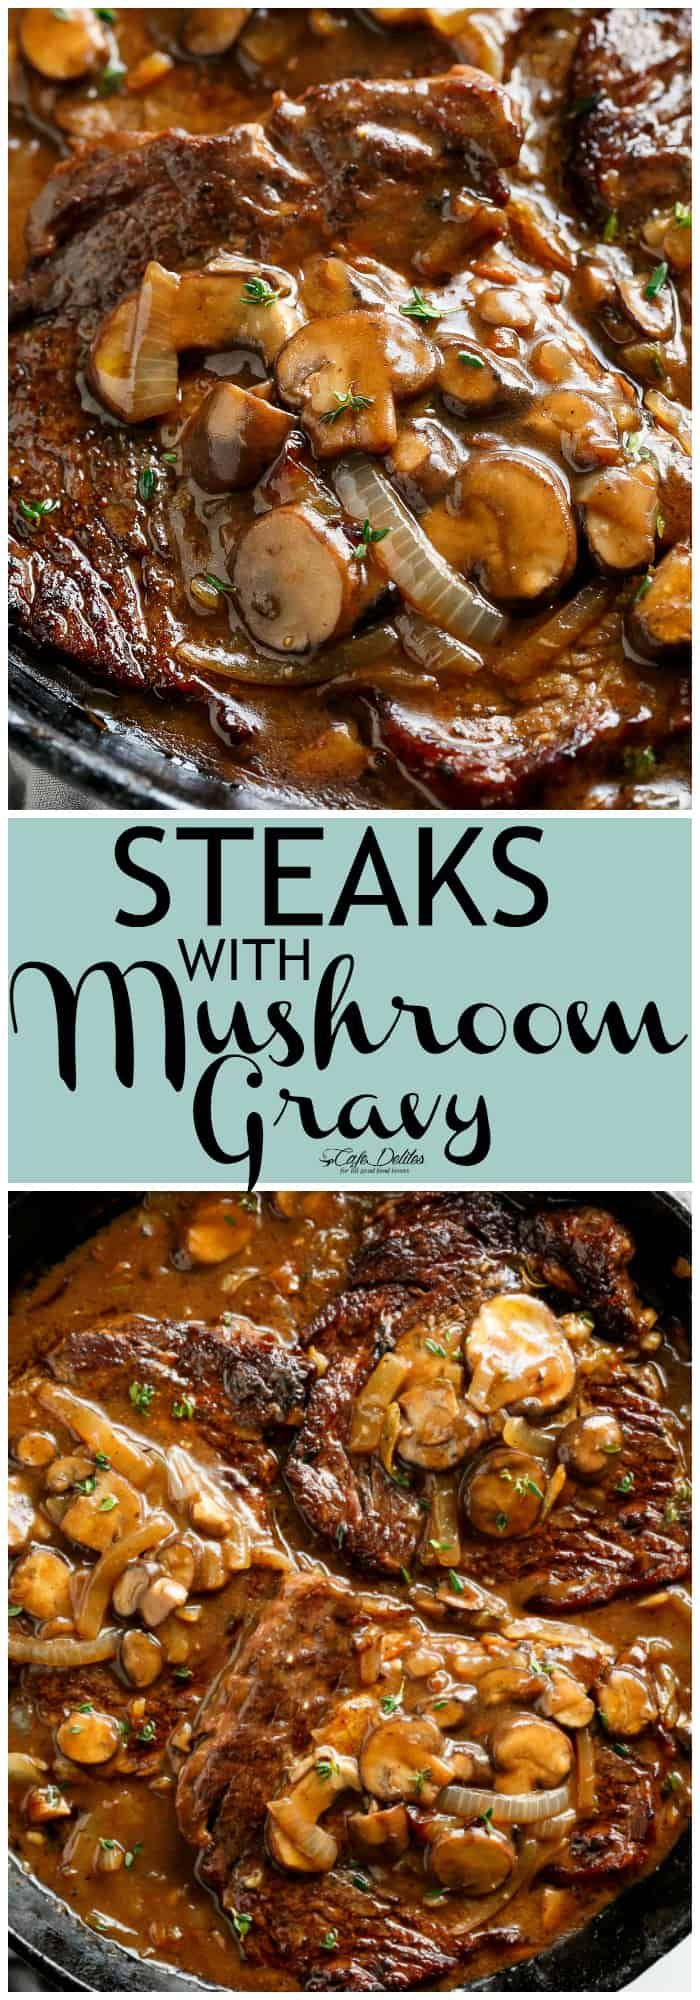 Ribeye Steaks With Mushroom Gravy is simple and delicious with a quick and easy homemade gravy made from scratch! If you're a steak and gravy fan, then these juicy searedsteaks are calling your name! Have dinner served on the table in 15 minutes!